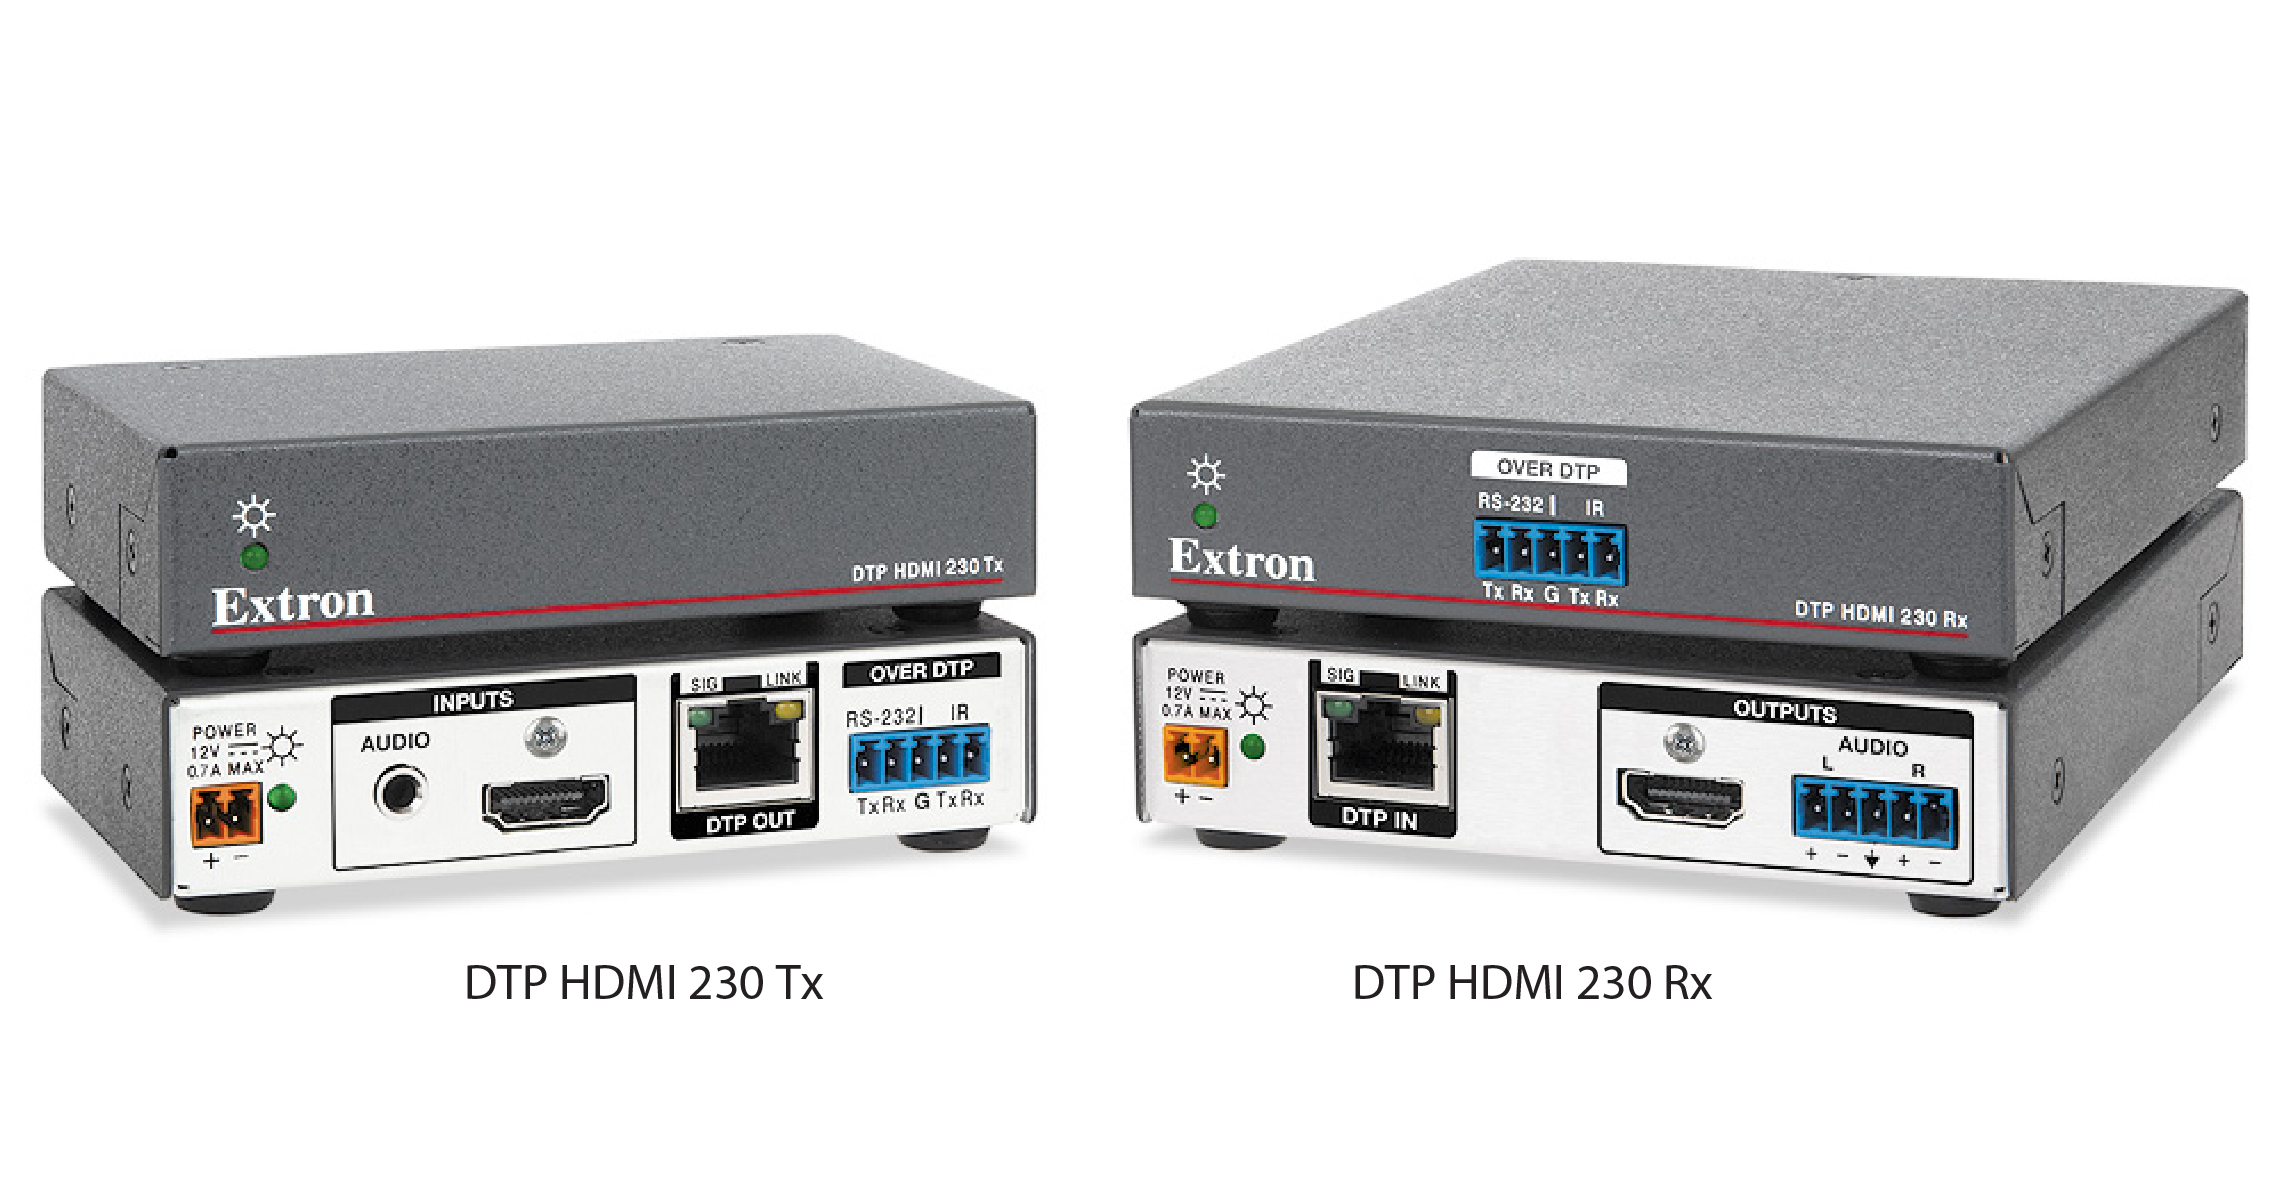 Extron Products - Planetcomm